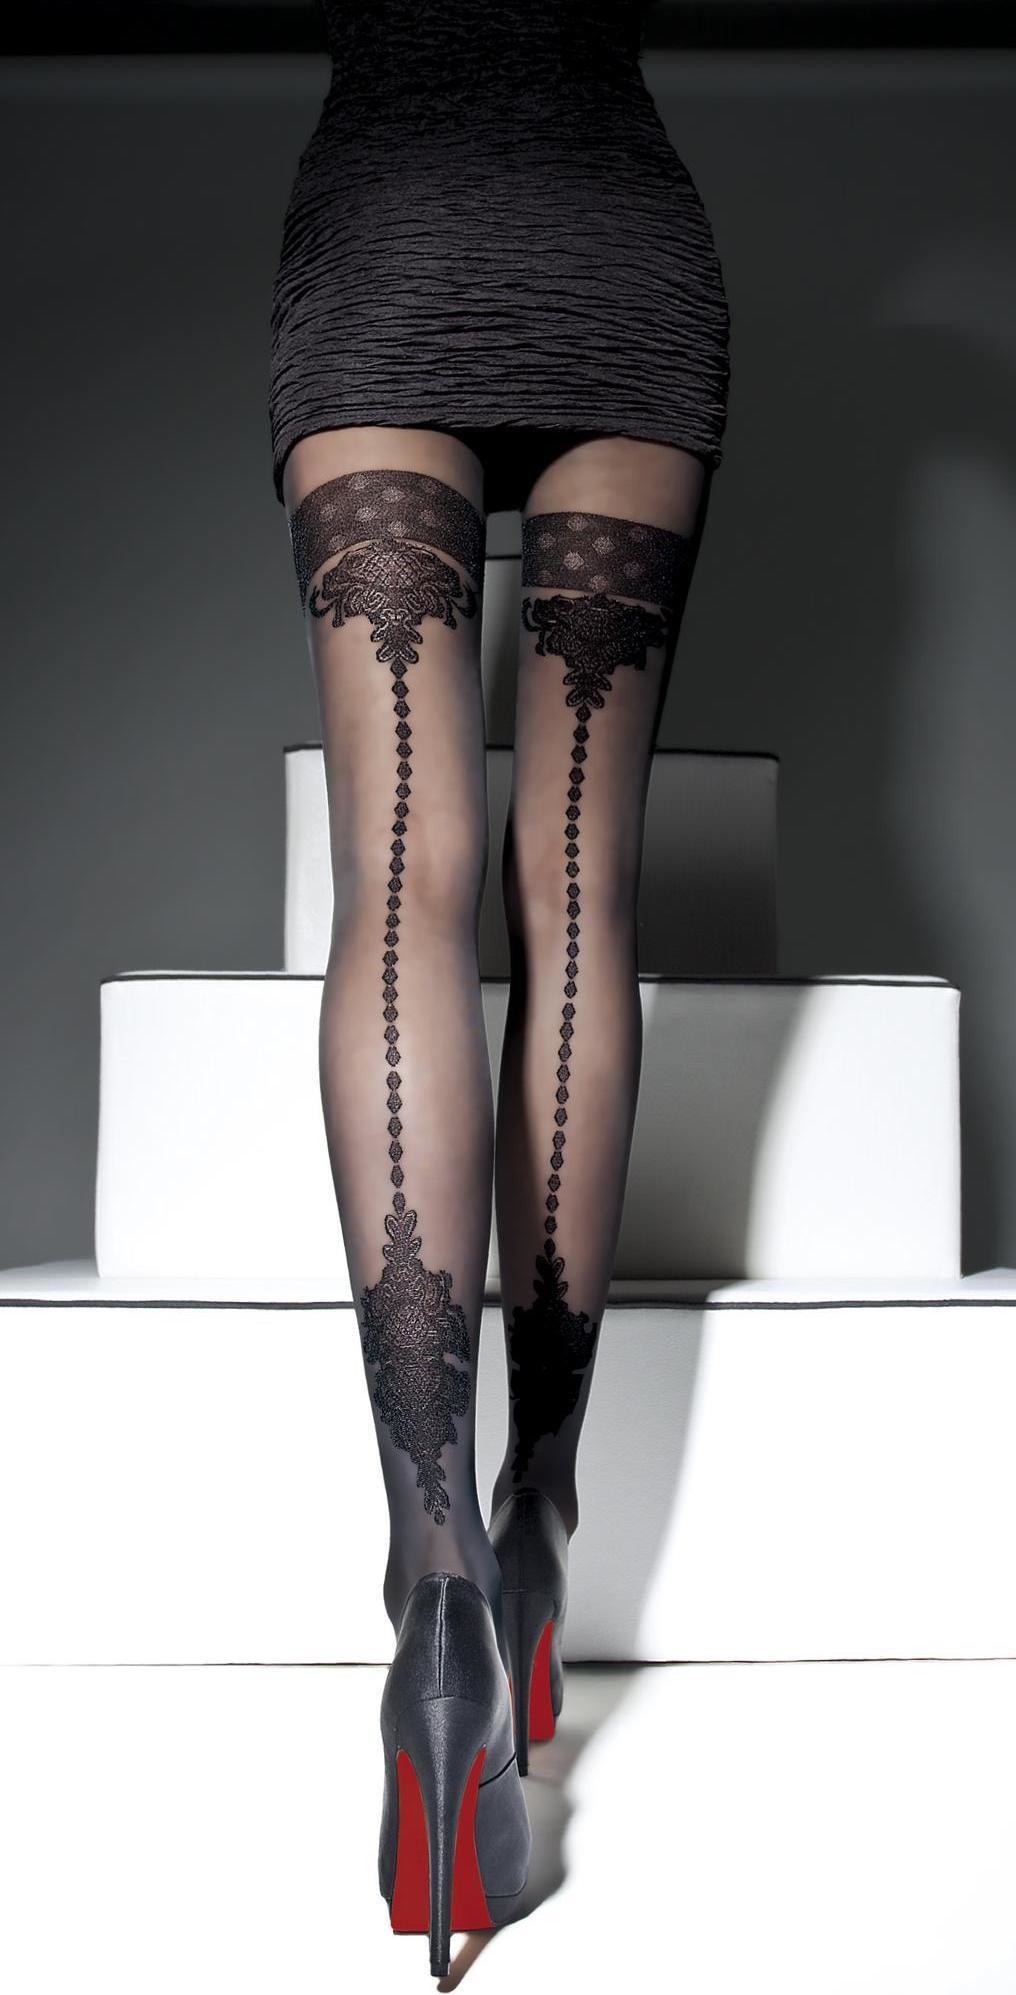 Fiore: Crystal Chandelier Semi-Opaque Patterned Tights FIO_APRIEL_n